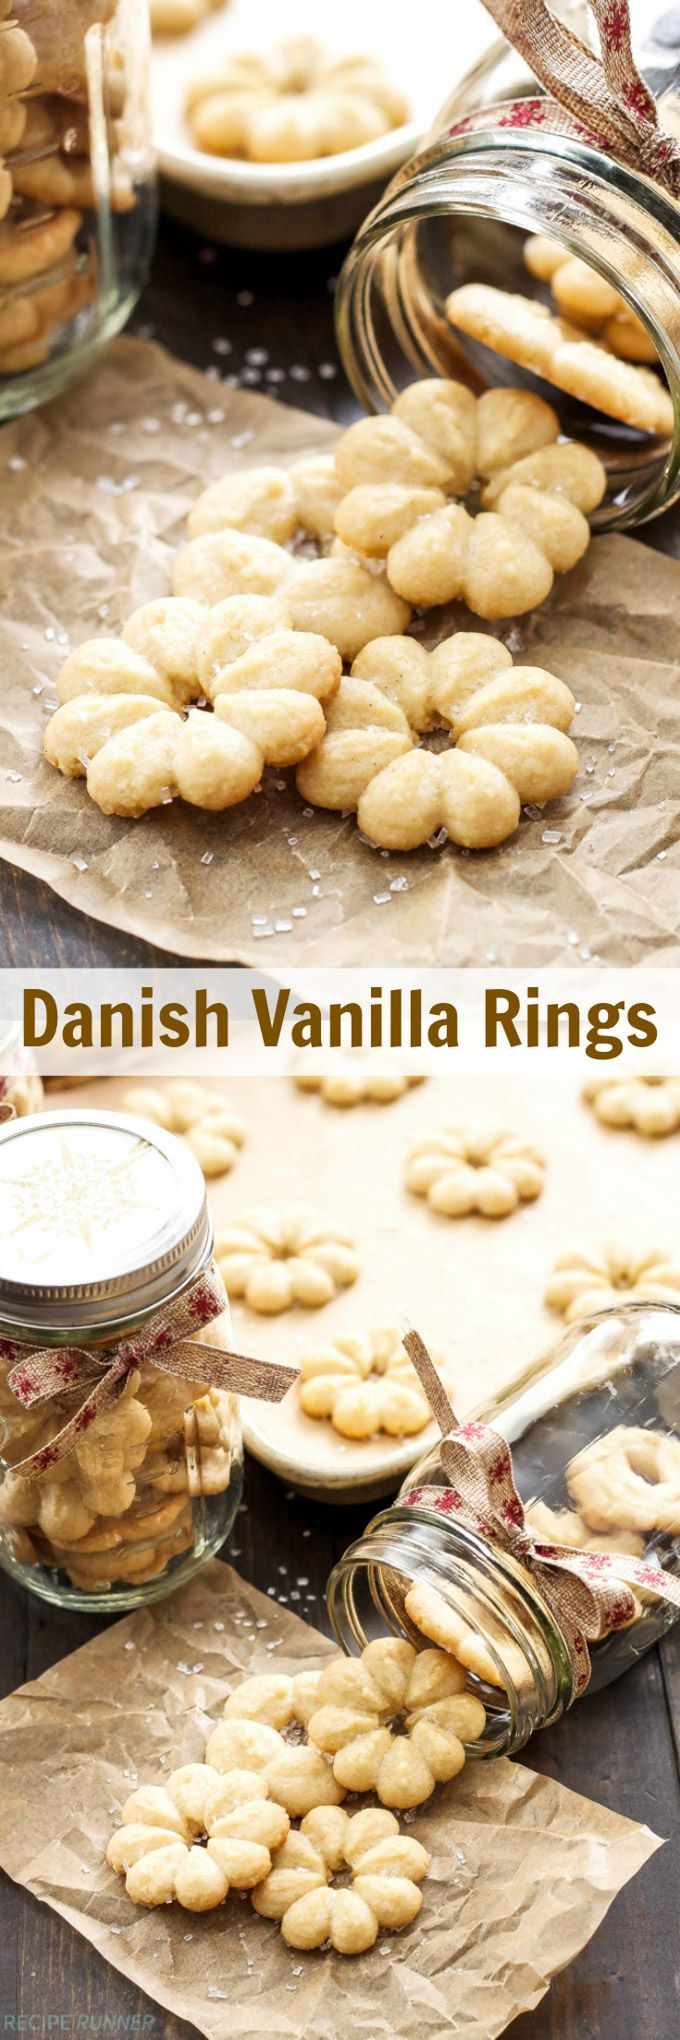 Danish Vanilla Rings | These traditional Danish Christmas cookies are crisp, buttery and so delicious!